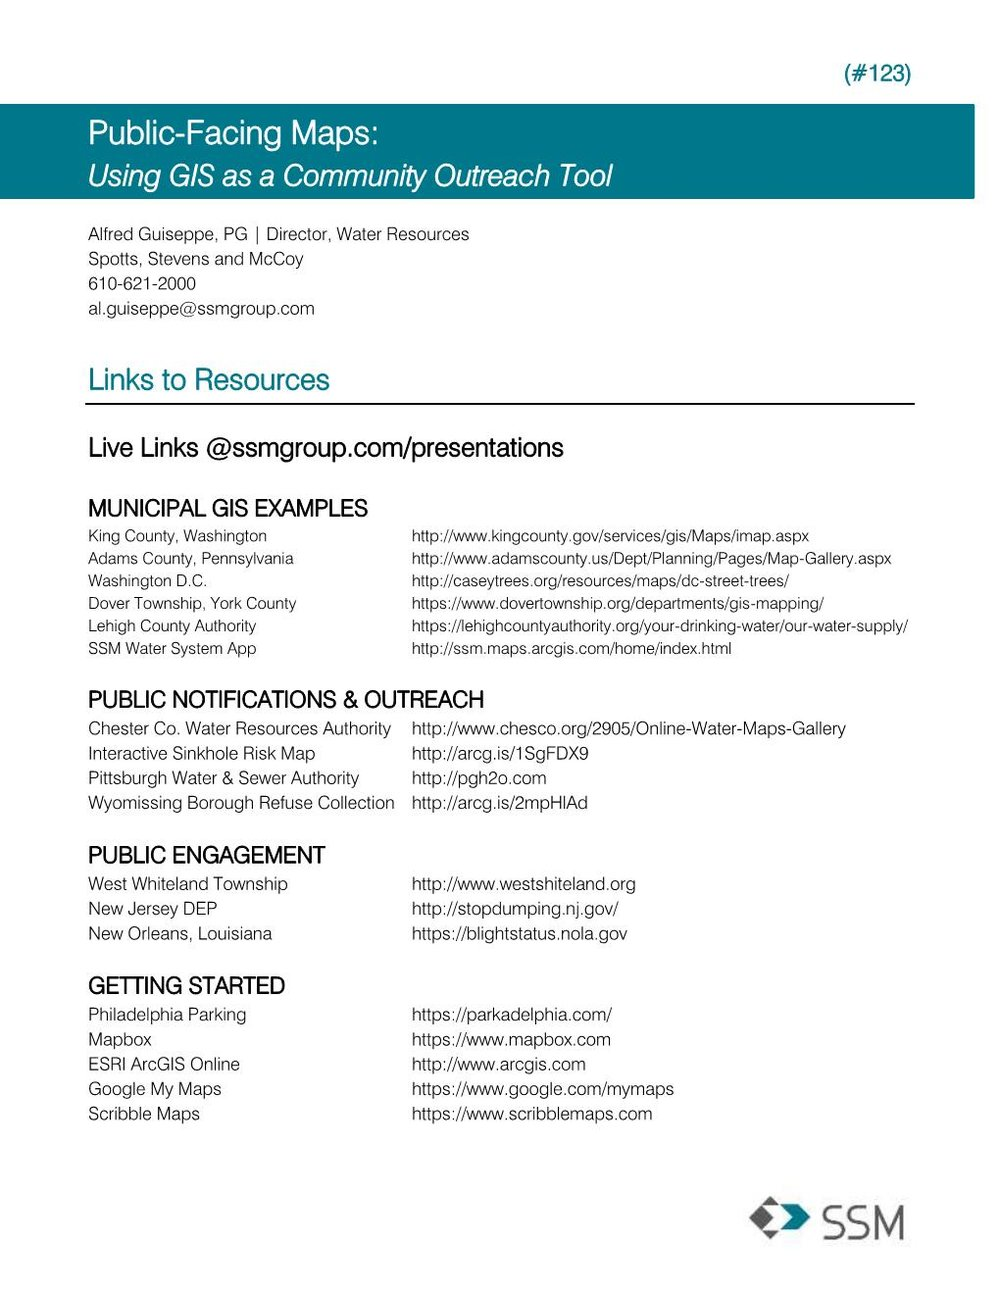 PublicFacing Maps Using GIS As A Community Outreach Tool - Washington dc gis map